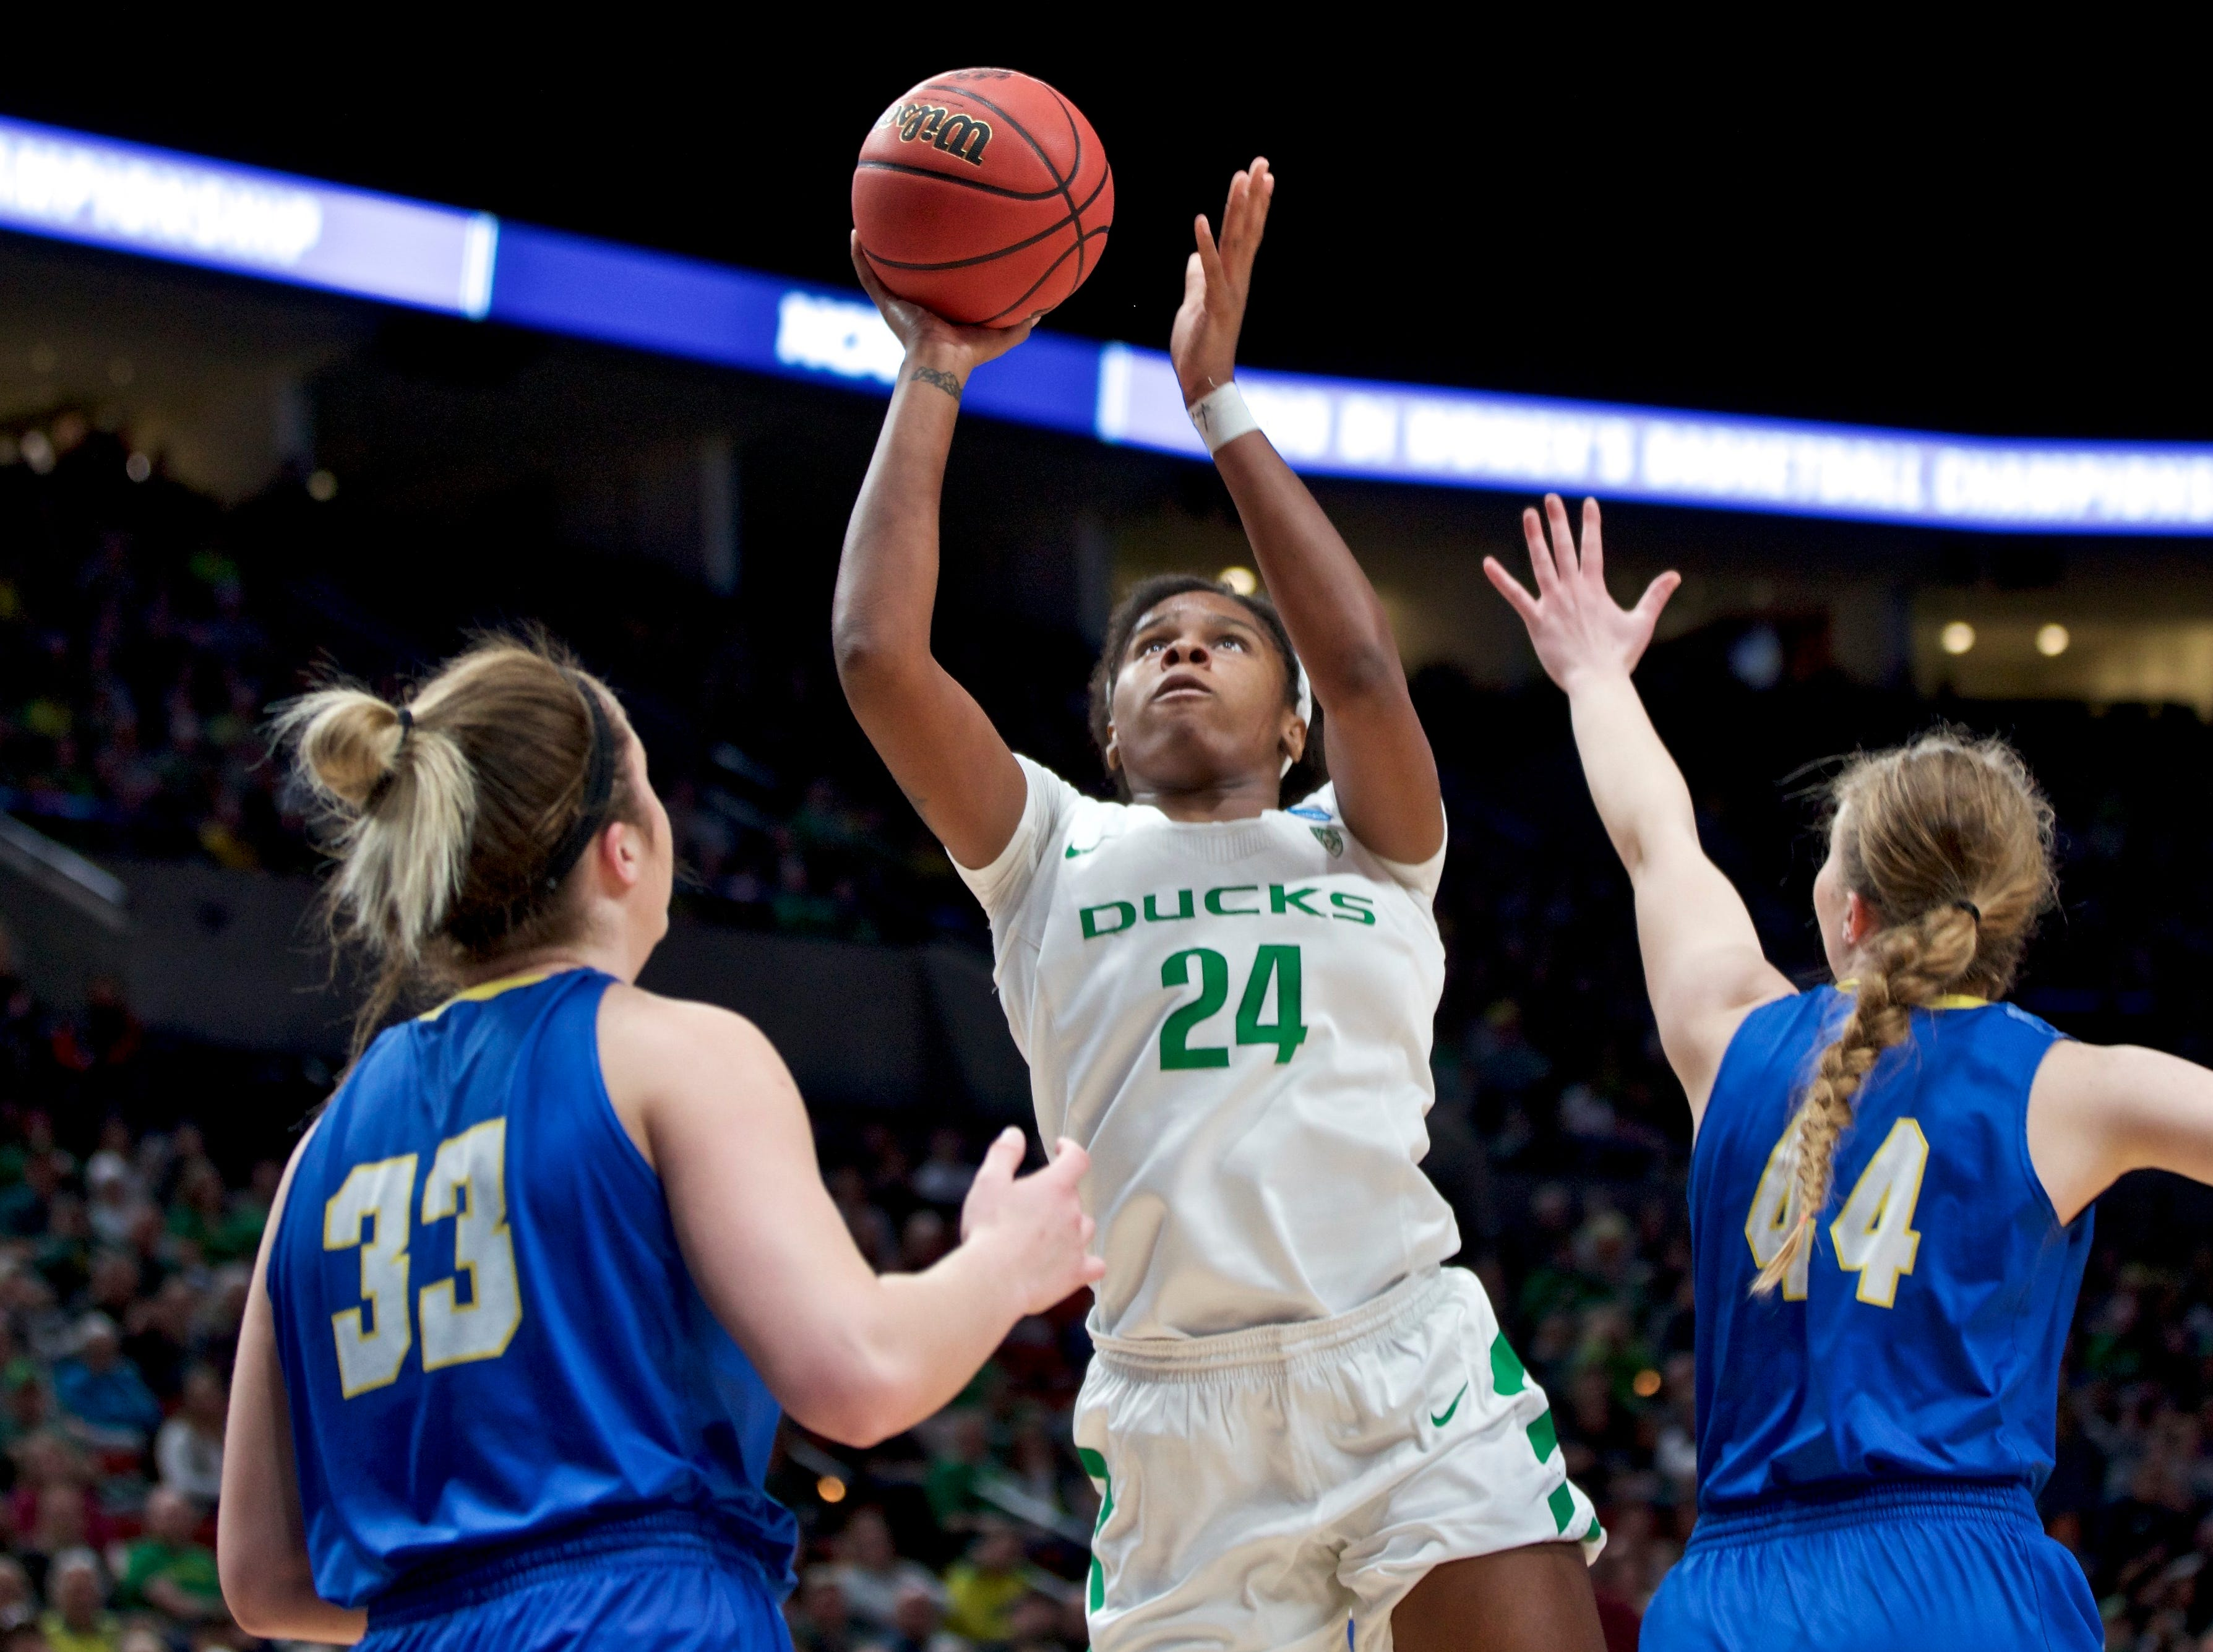 Oregon forward Ruthy Hebard, center, shoots in front of South Dakota State forwards Paiton Burckhard, right, and Myah Selland during the first half of a regional semifinal in the NCAA women's college basketball tournament Friday, March 29, 2019, in Portland, Ore. (AP Photo/Craig Mitchelldyer)